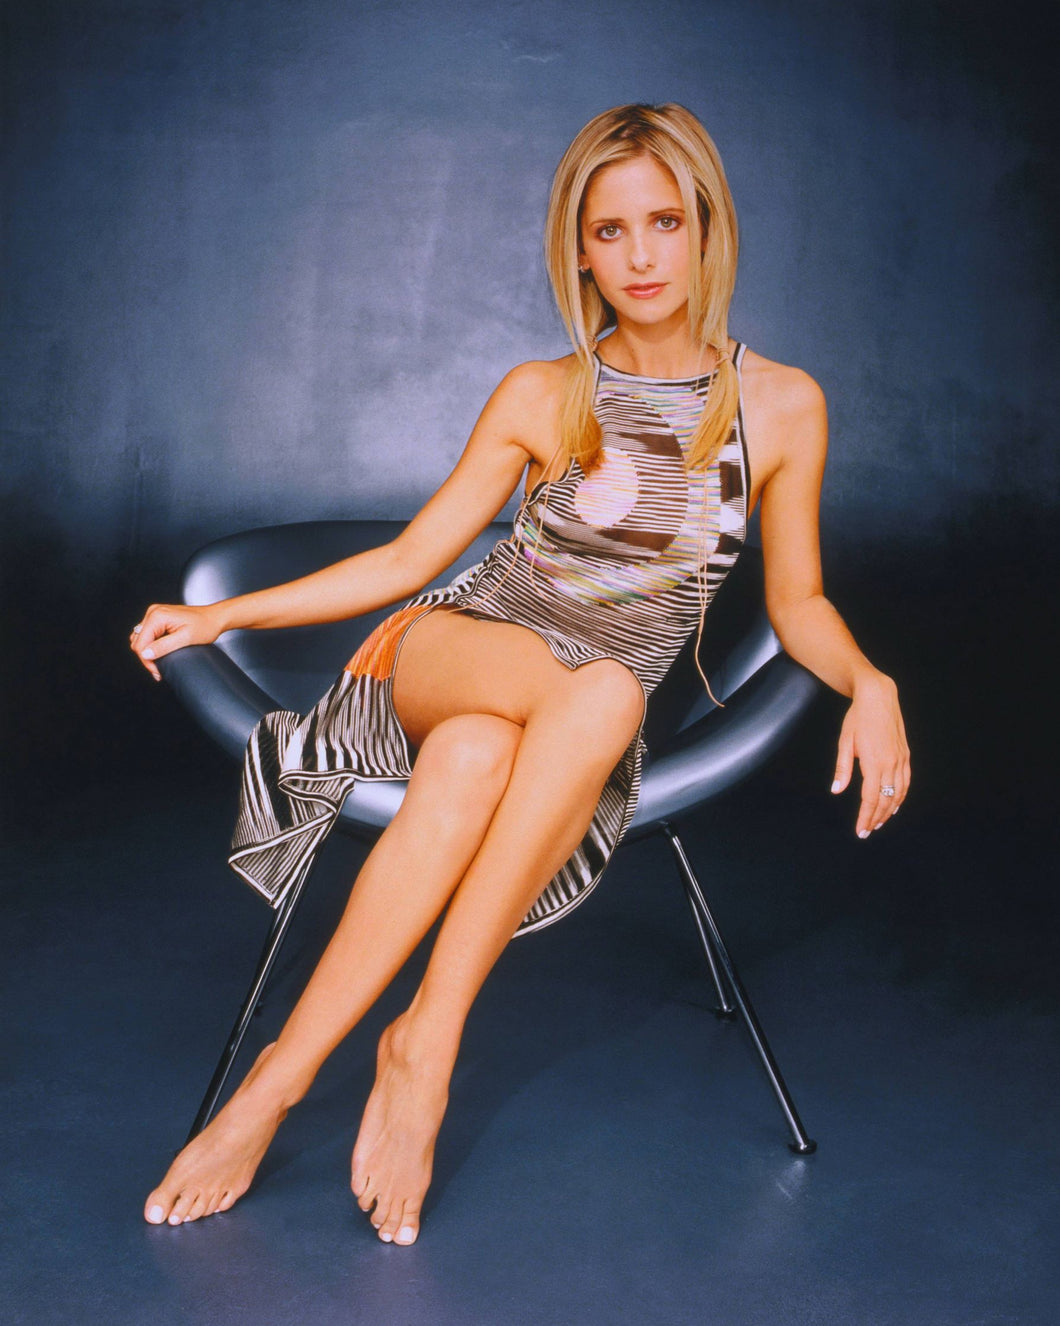 Sarah Michelle Gellar - Signed Poster Image #3 (16x20)